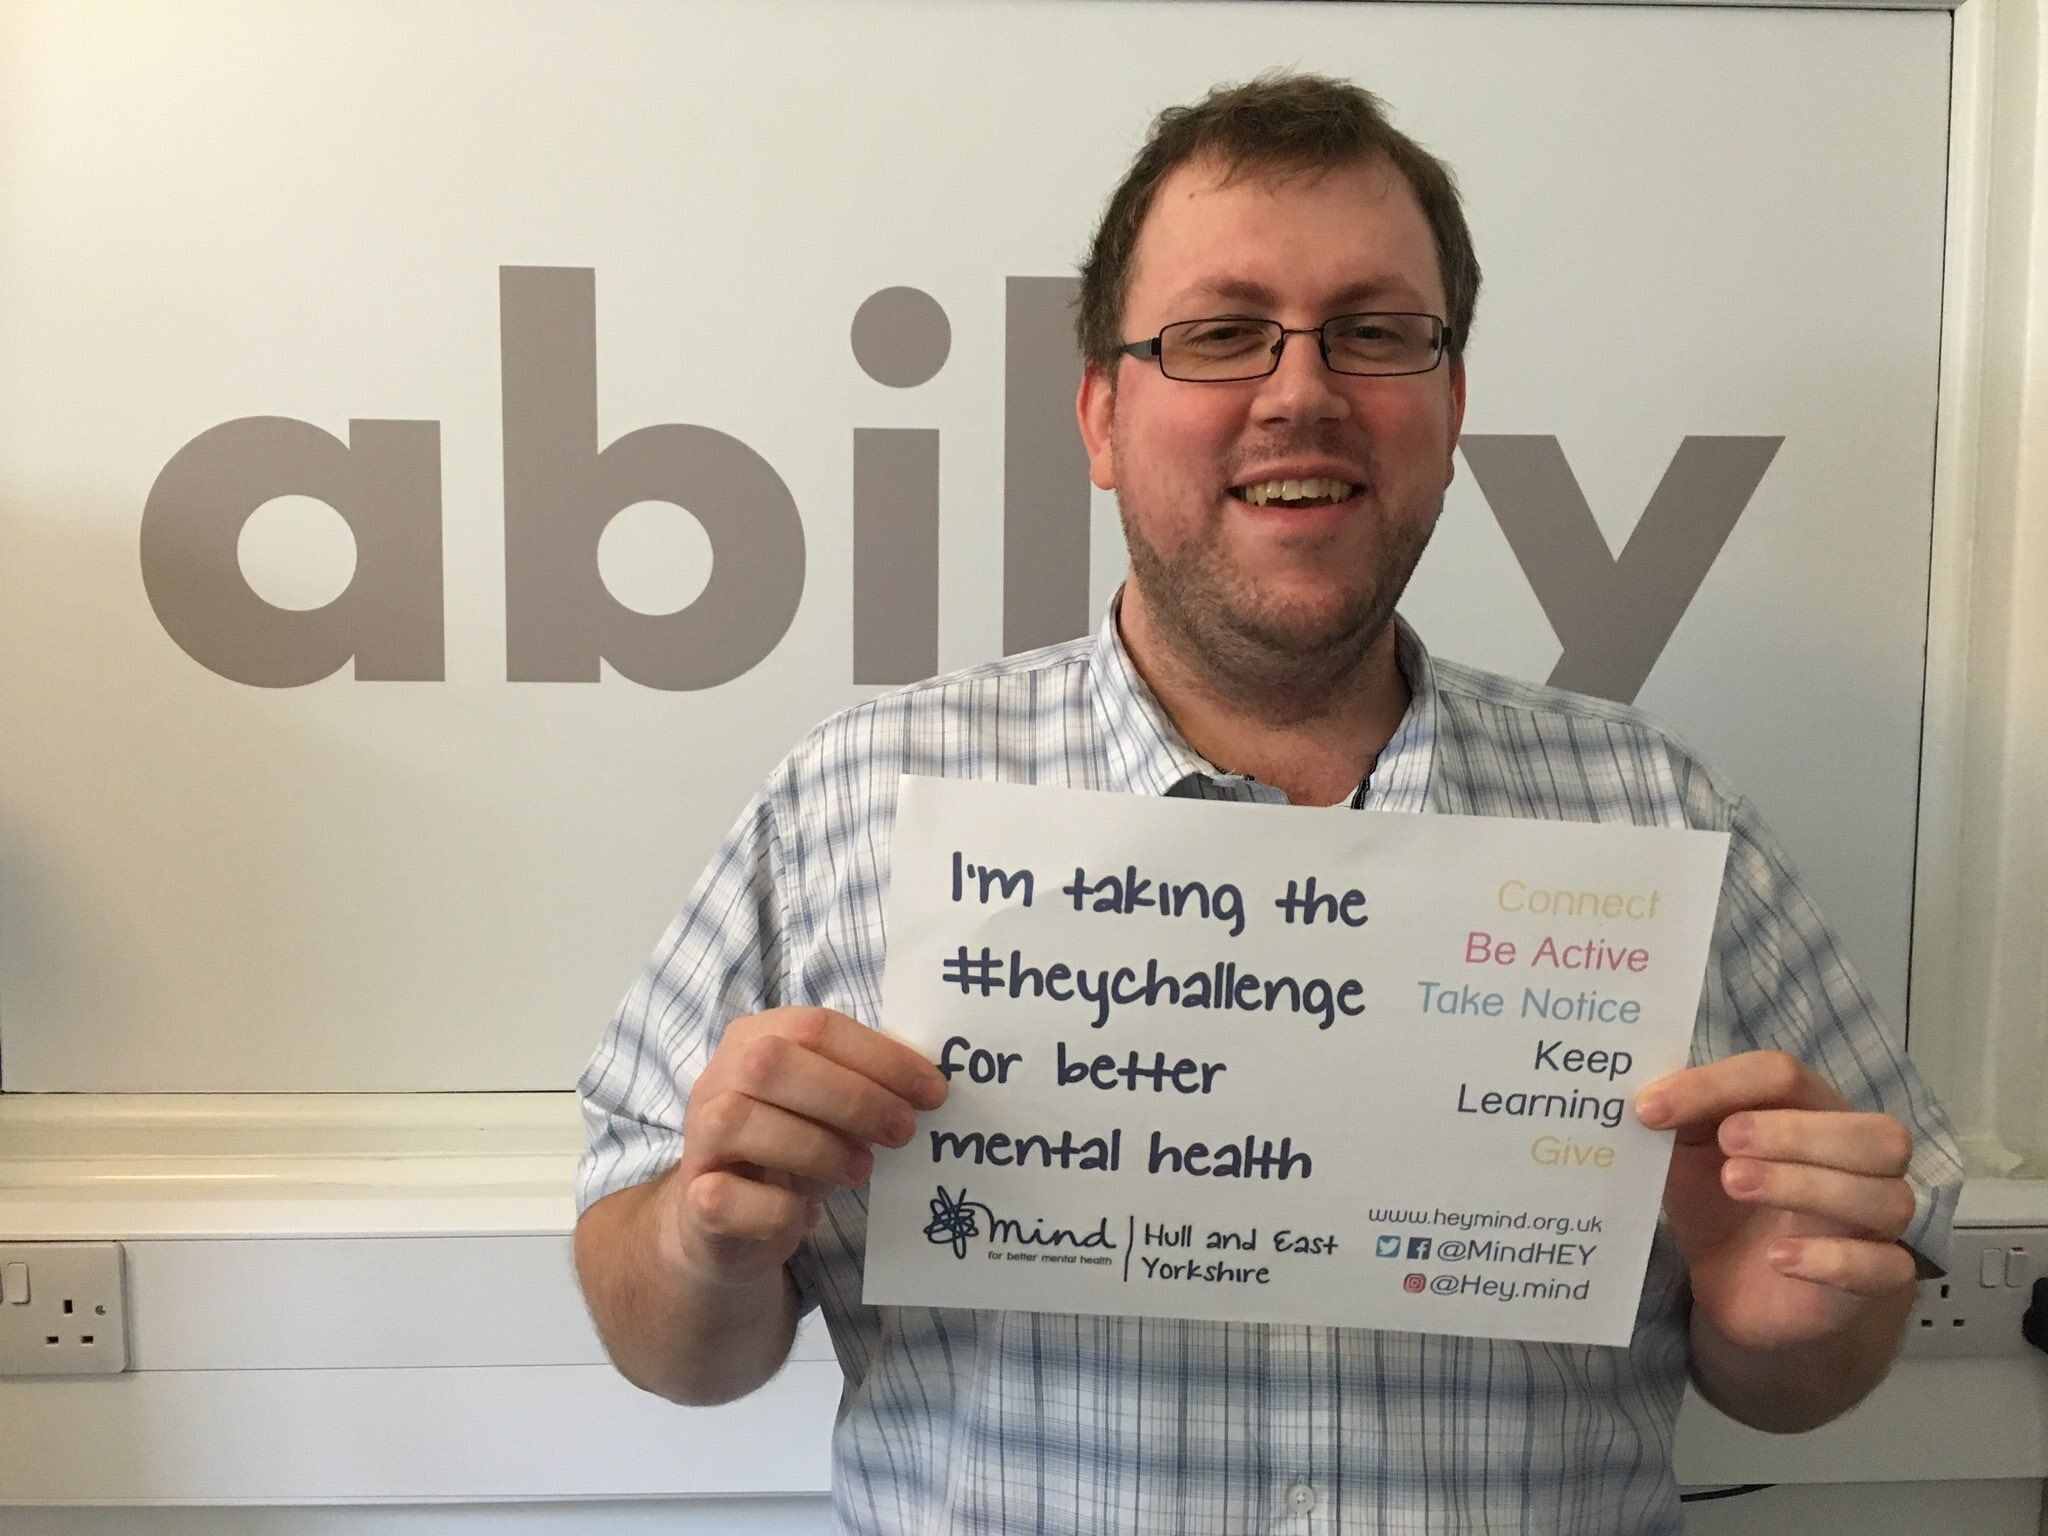 Proudly supporting the 5 ways to mental health #heychallenge in October with Hull & East Yorkshire Mind